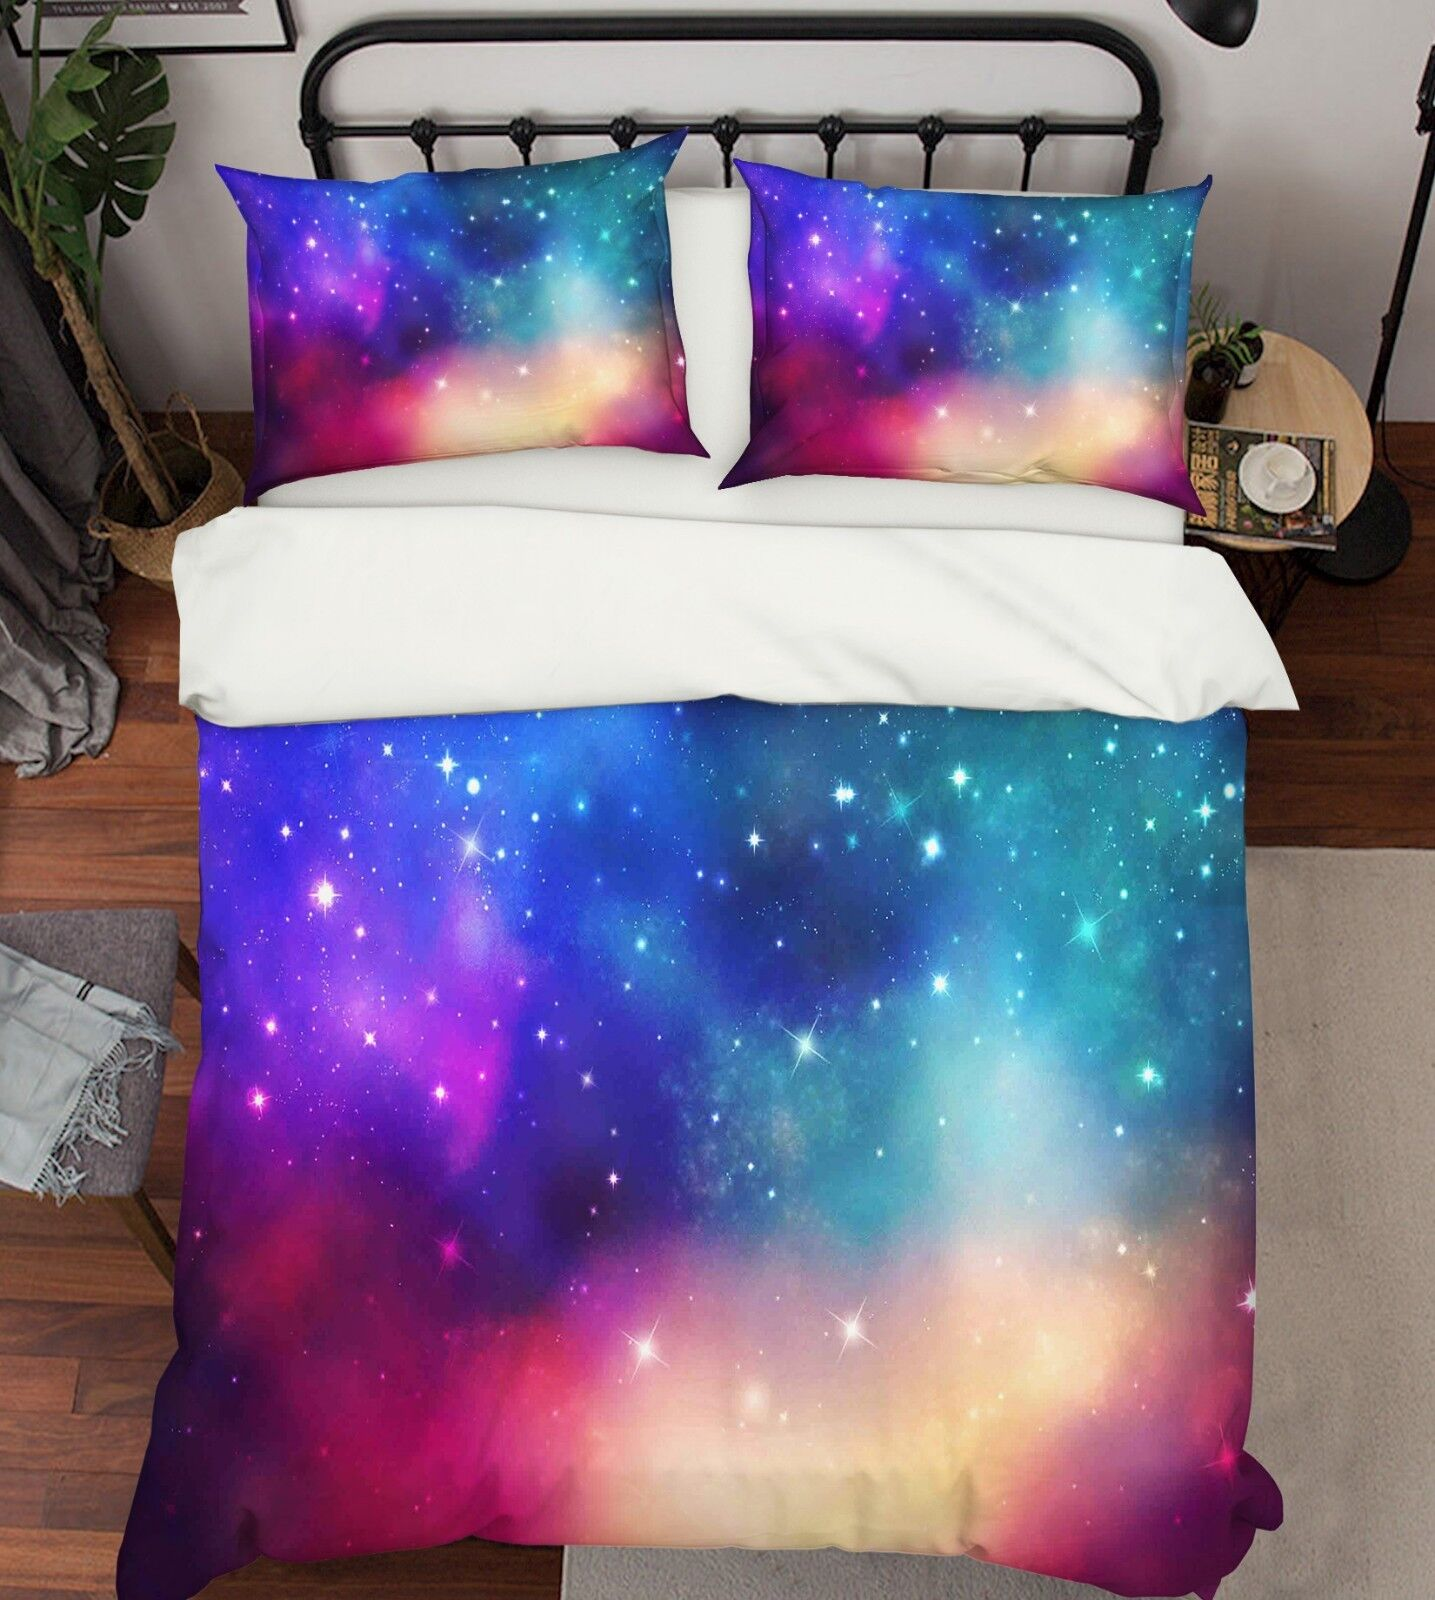 3D Starry Natural 794 Bed Pillowcases Quilt Duvet Cover Set Single Queen King CA